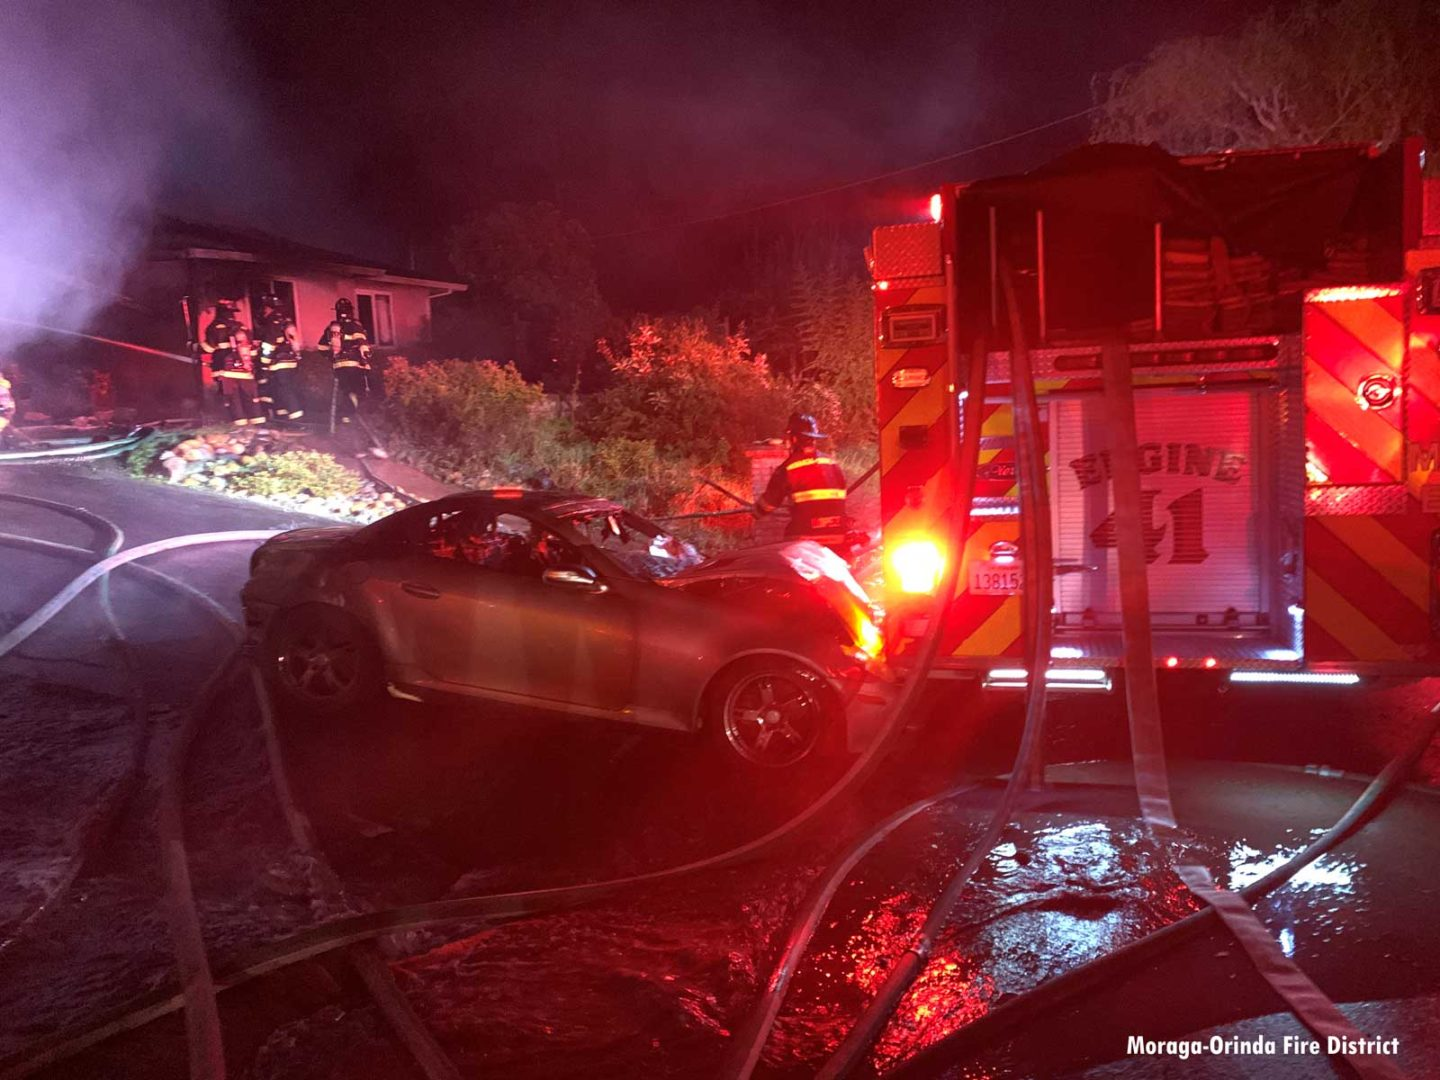 Another view of a burnt vehicle that ran into a California fire apparatus